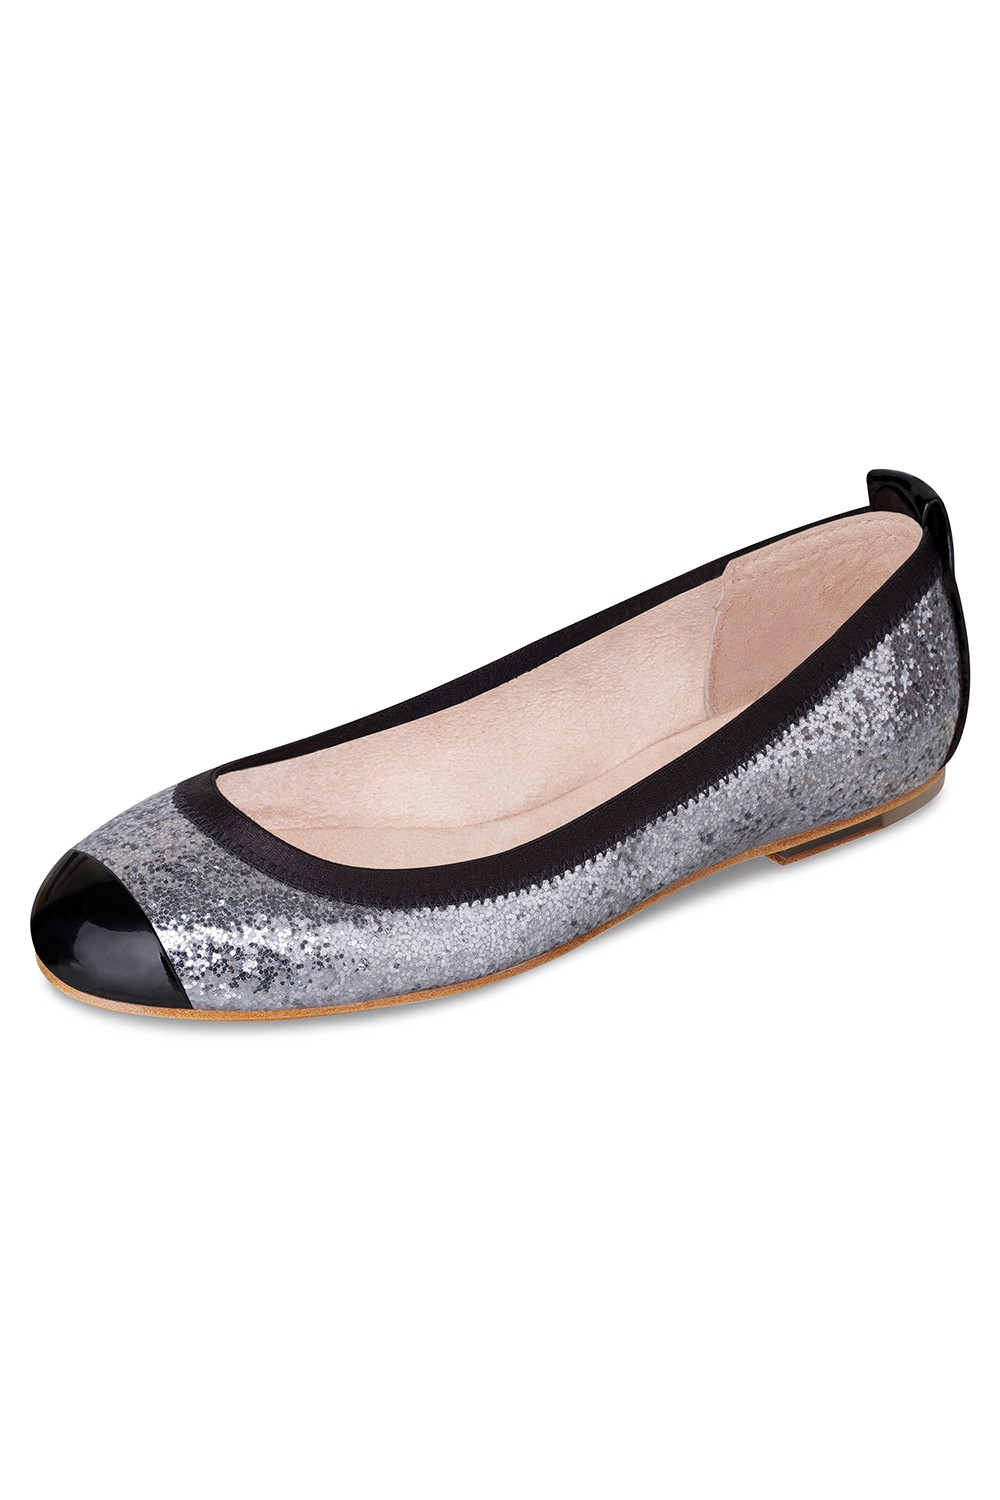 Elettra Ballet Flat Womens Fashion Shoes